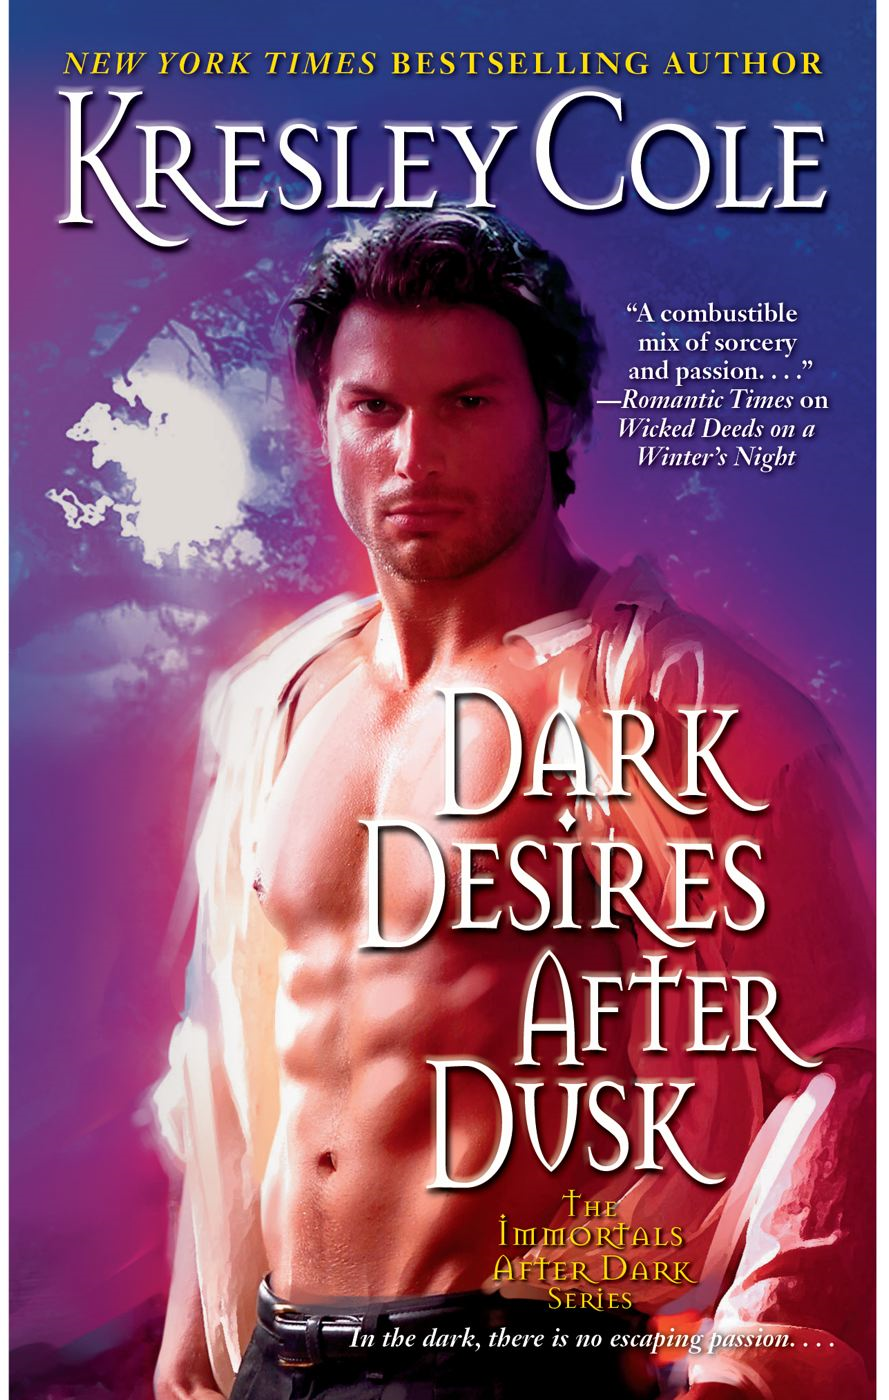 Dark Desires After Dusk By: Kresley Cole